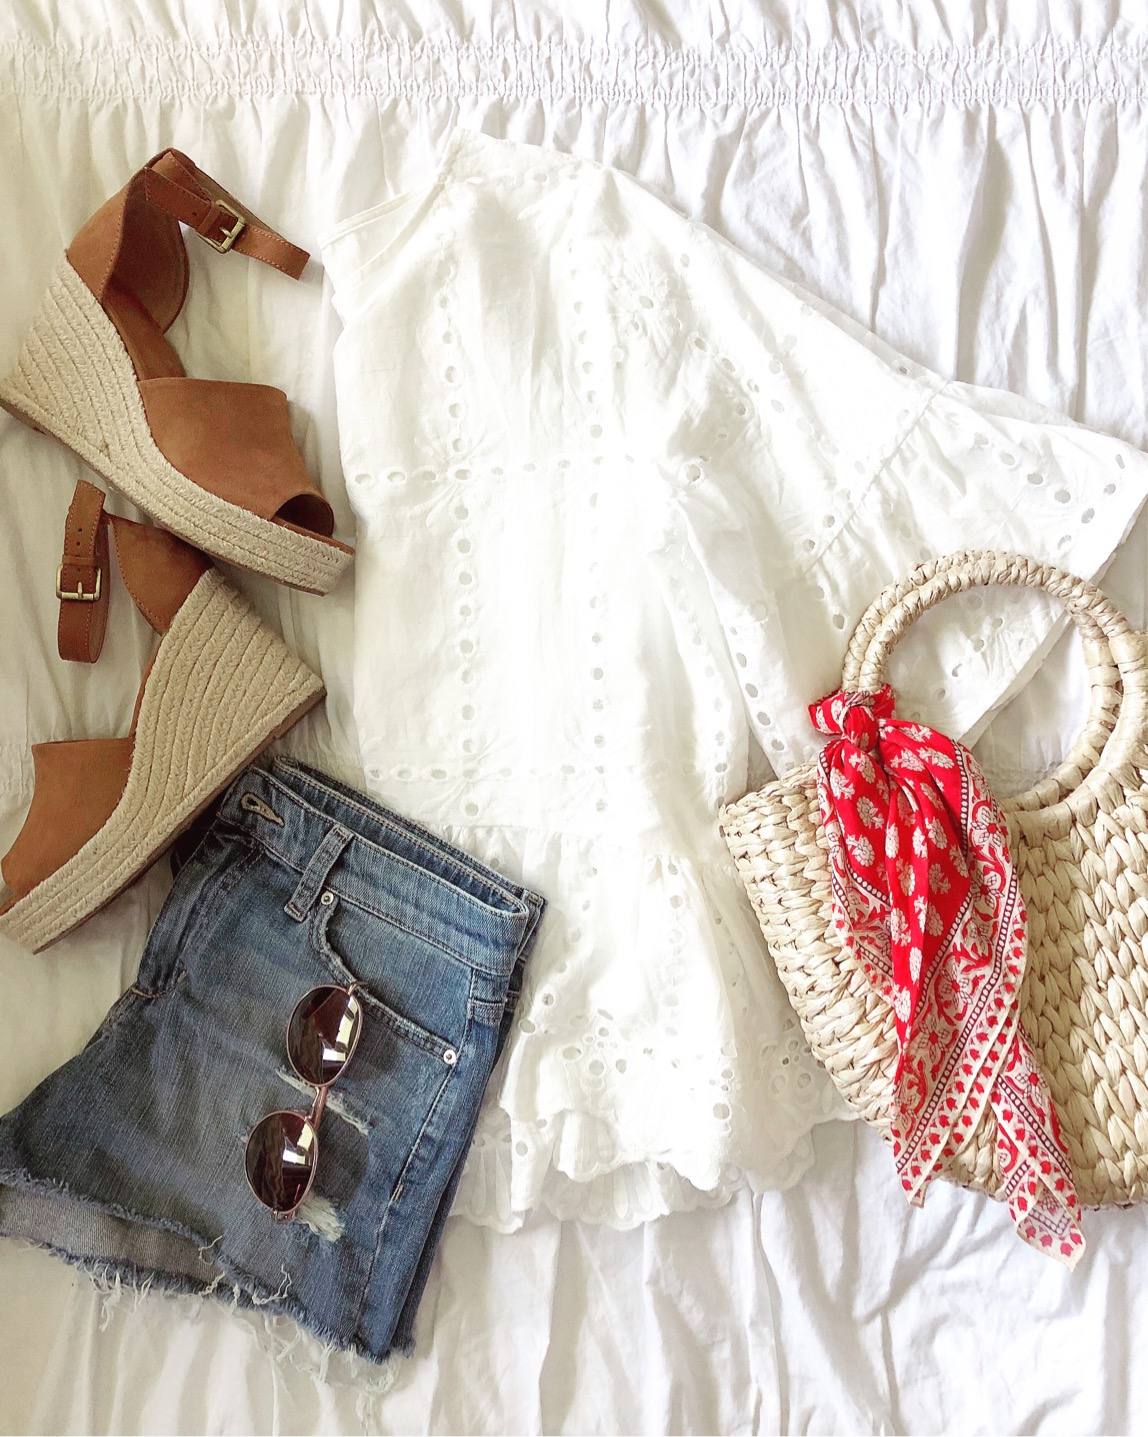 what to wear for the 4th of july, 4th of july outfit inspiration, red white and blue outfit